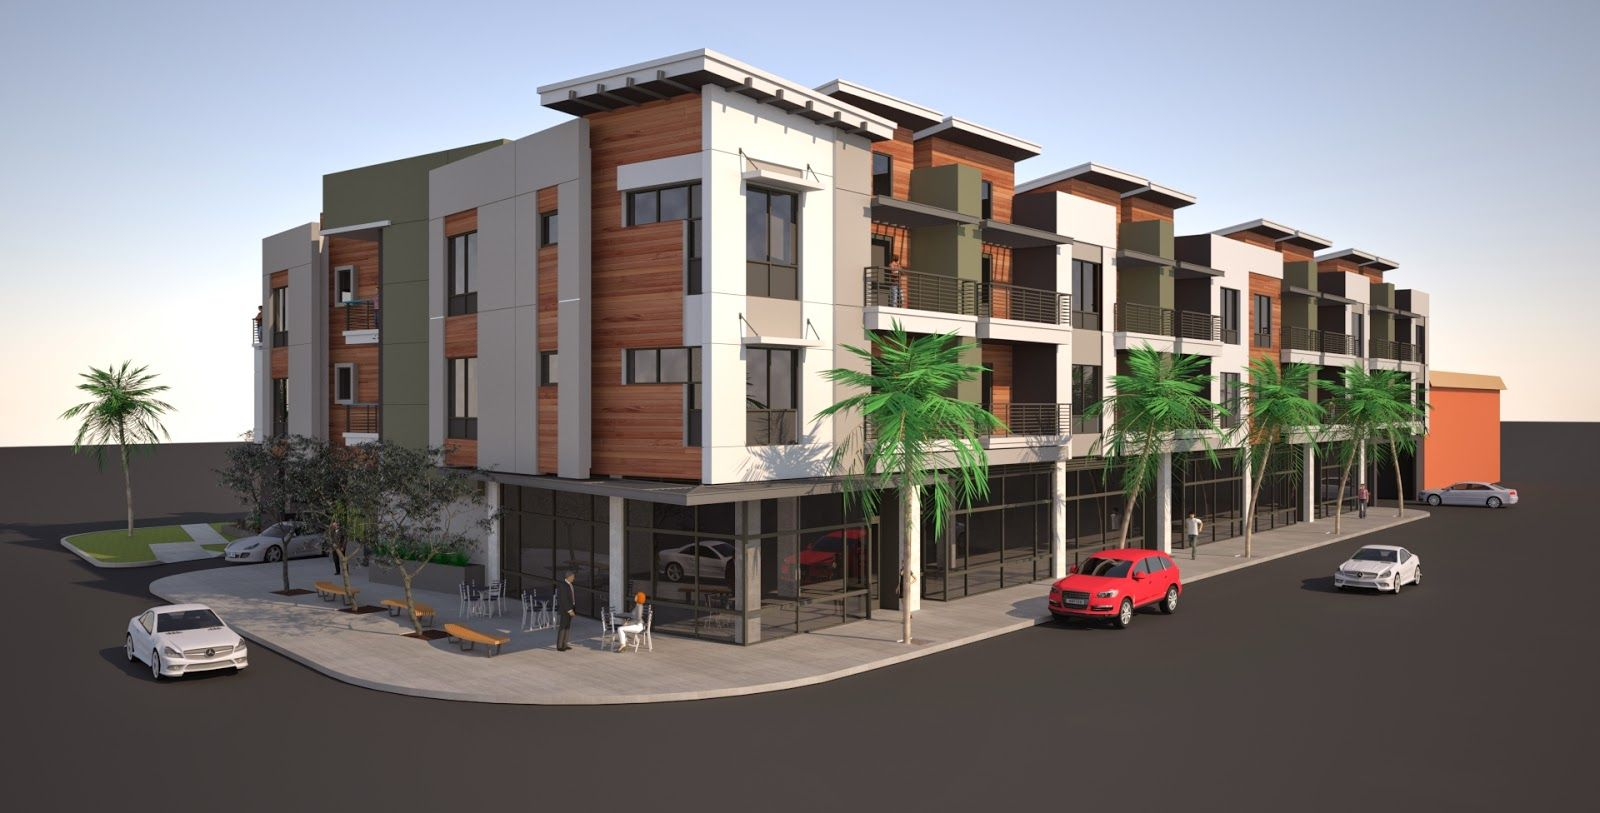 A mixed use complex featuring 30 residential units and for Apartment building plans 4 units